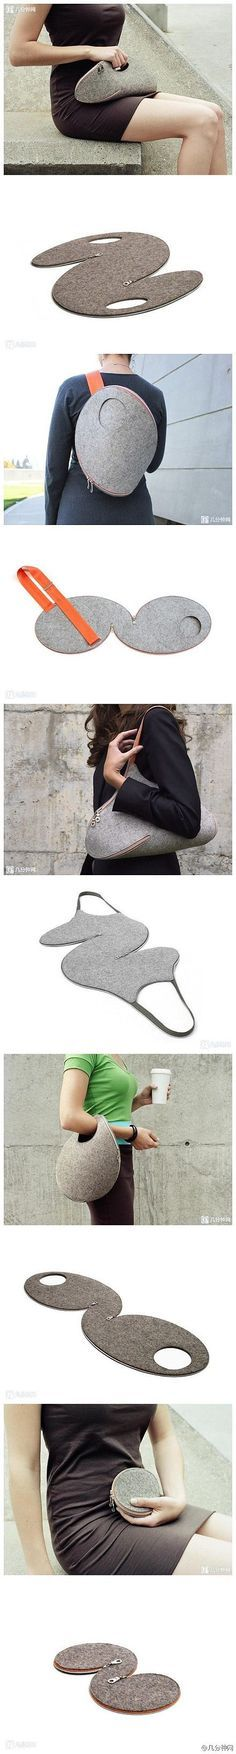 DIY Cool Lady Bag Pictures, Photos, and Images for Facebook, Tumblr, Pinterest, and Twitter | Своими руками | Постила